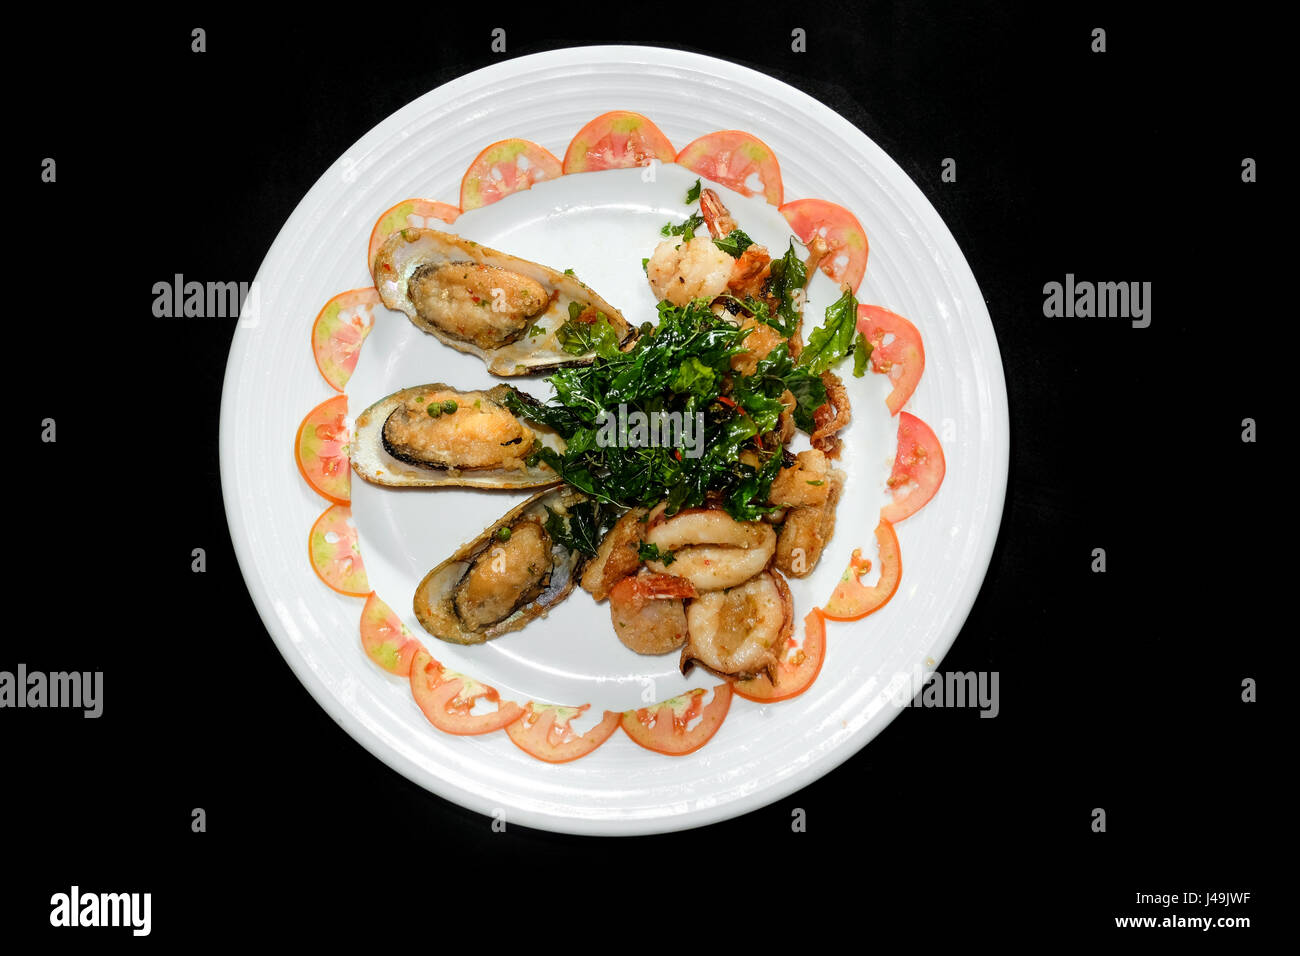 Plate of Asian Style Sesame ginger scallop with hoisin sauce and Shrimp Skewers in black background - Stock Image